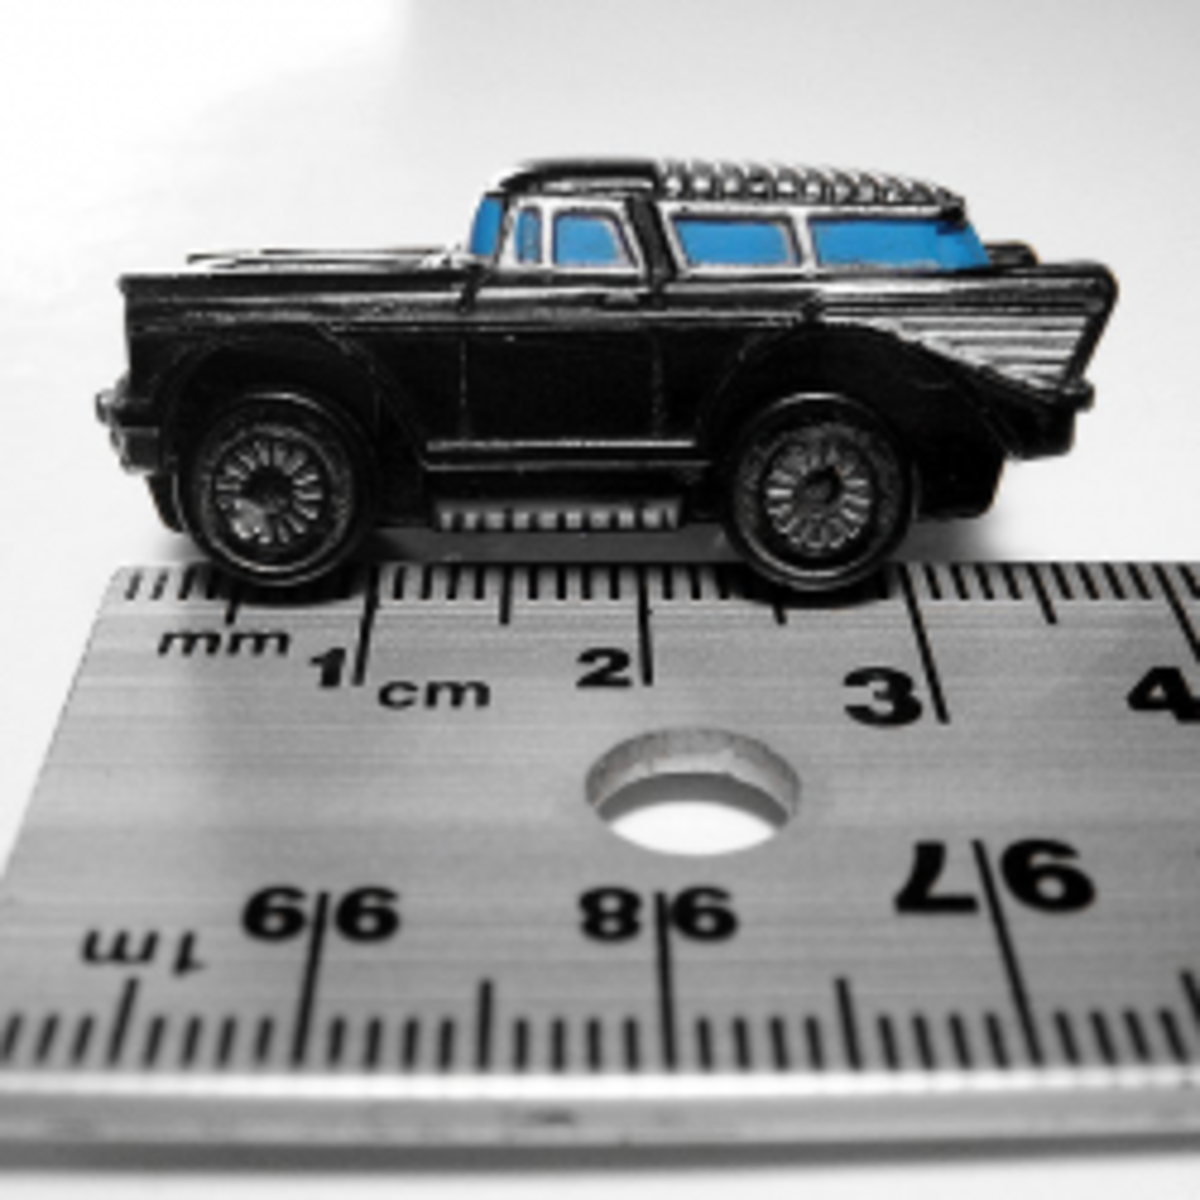 Can You Still Buy Micro Machines?